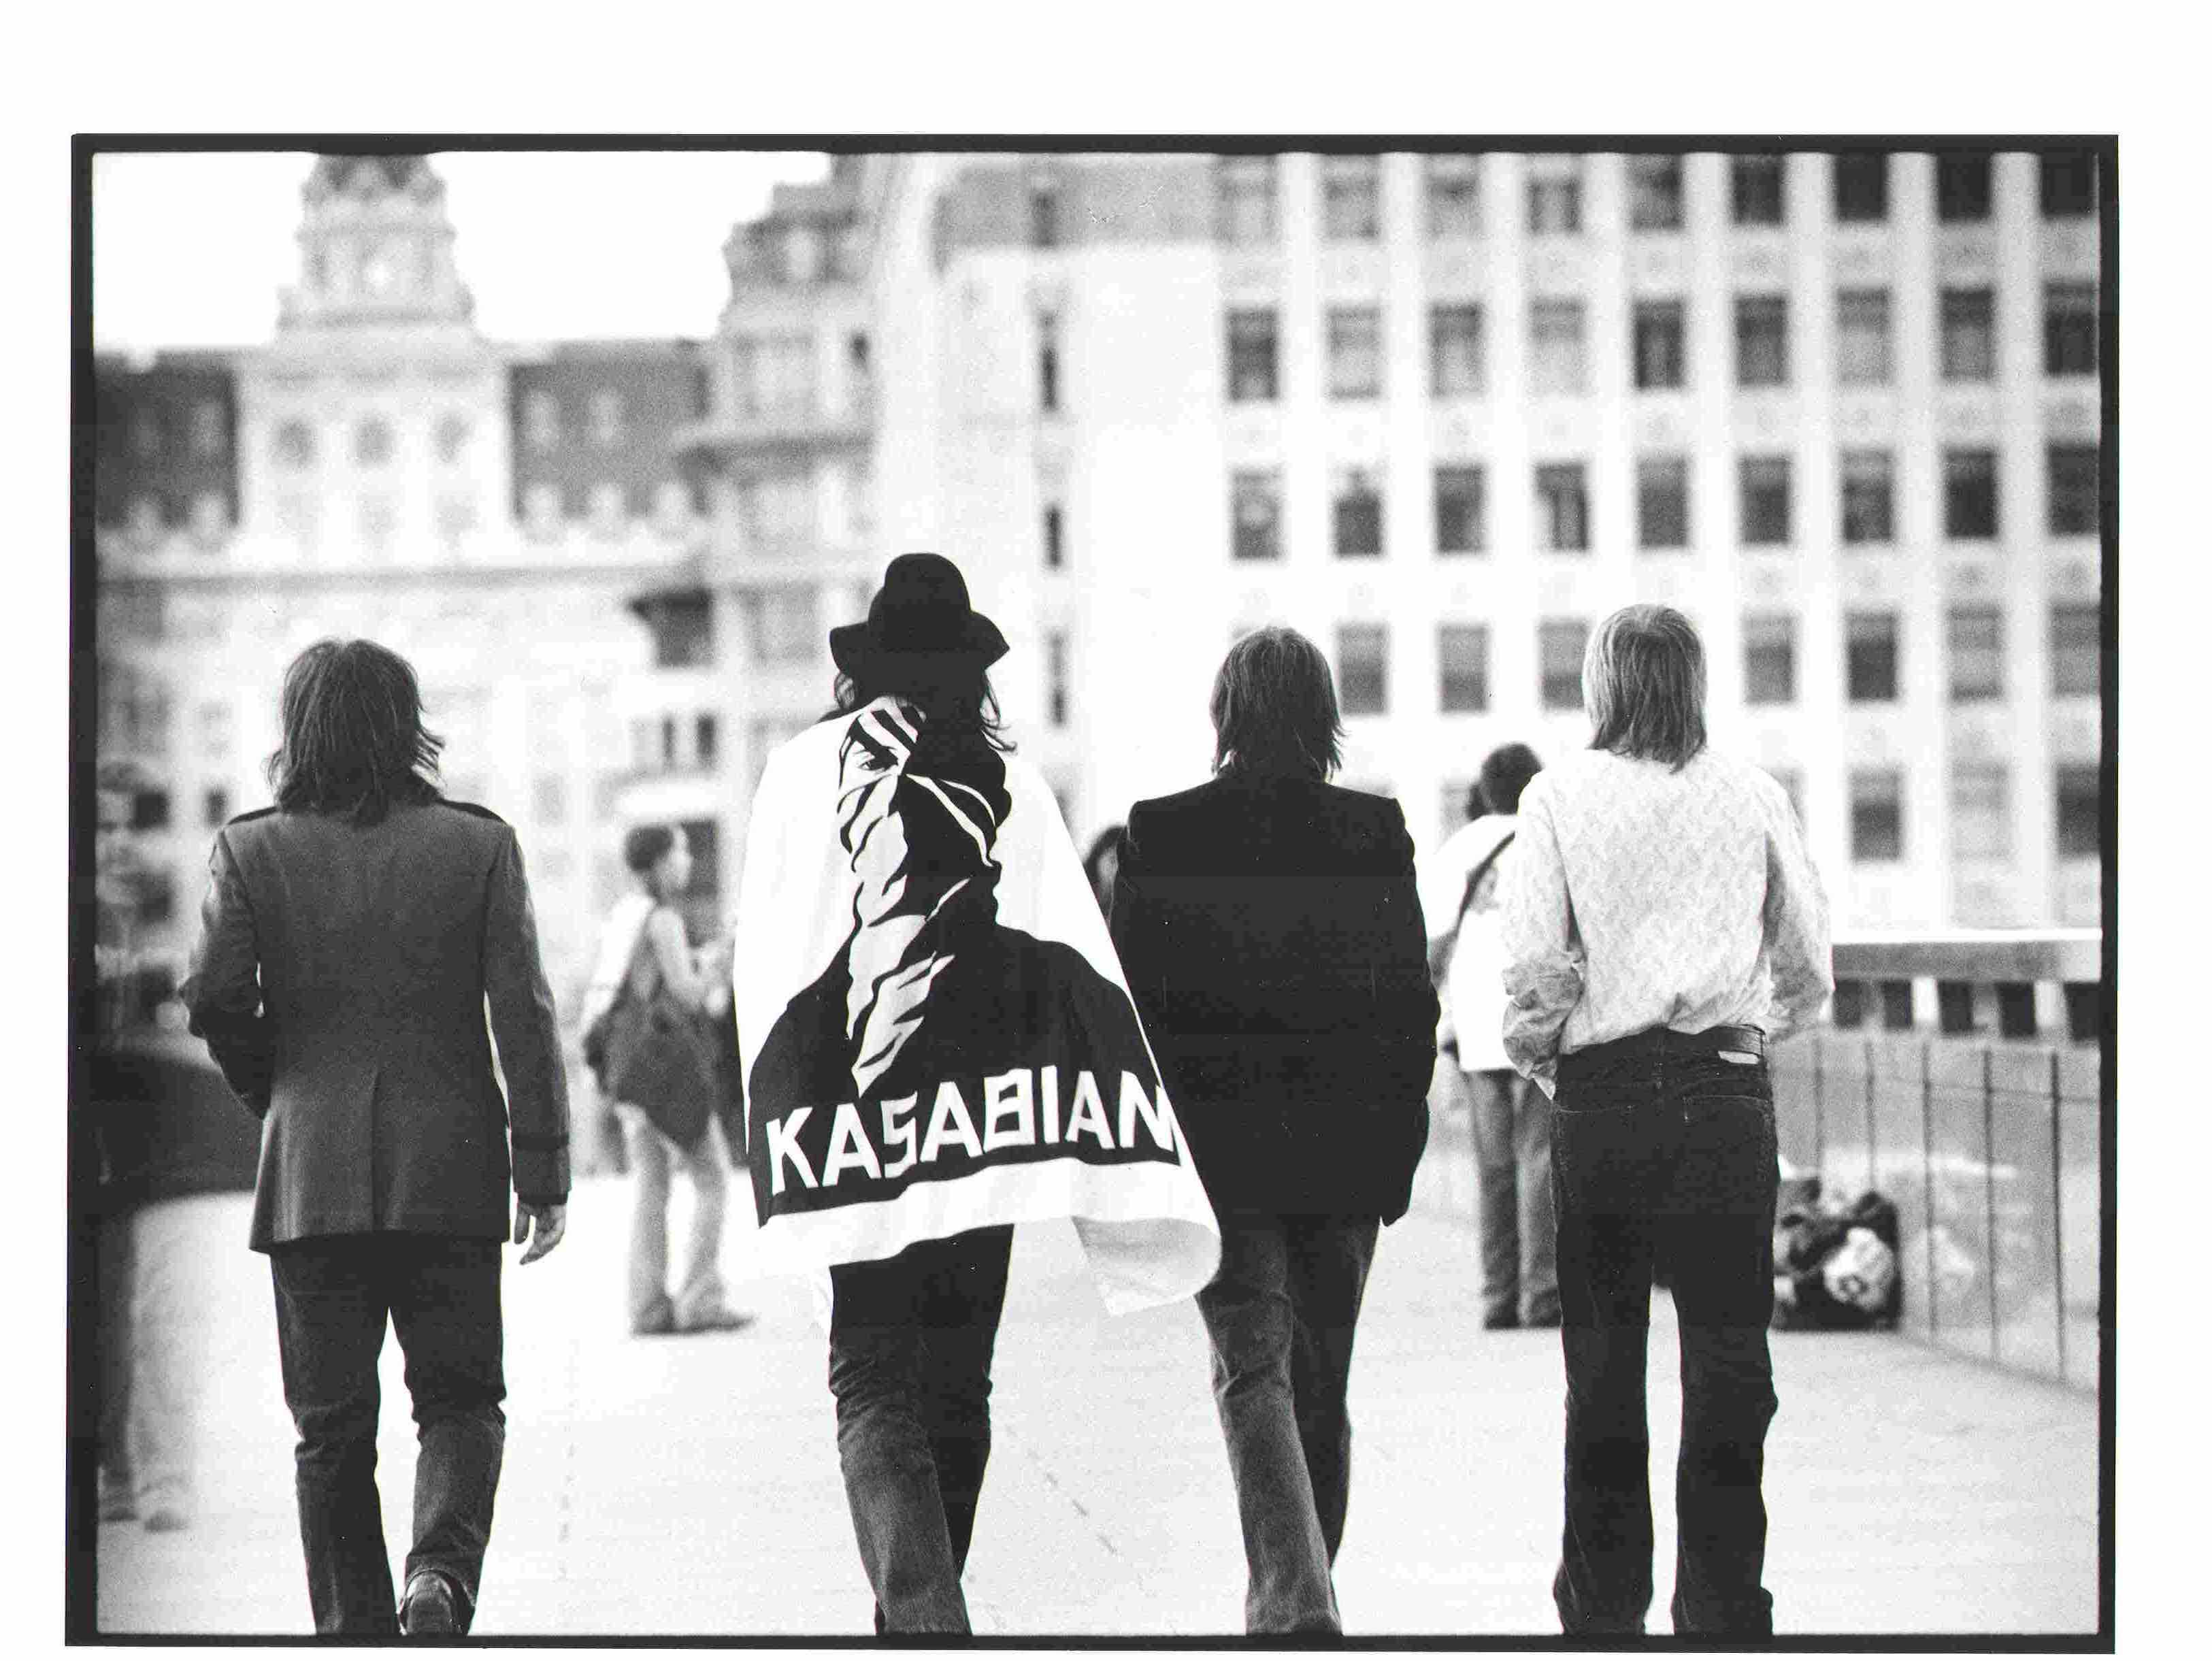 Kasabian Background